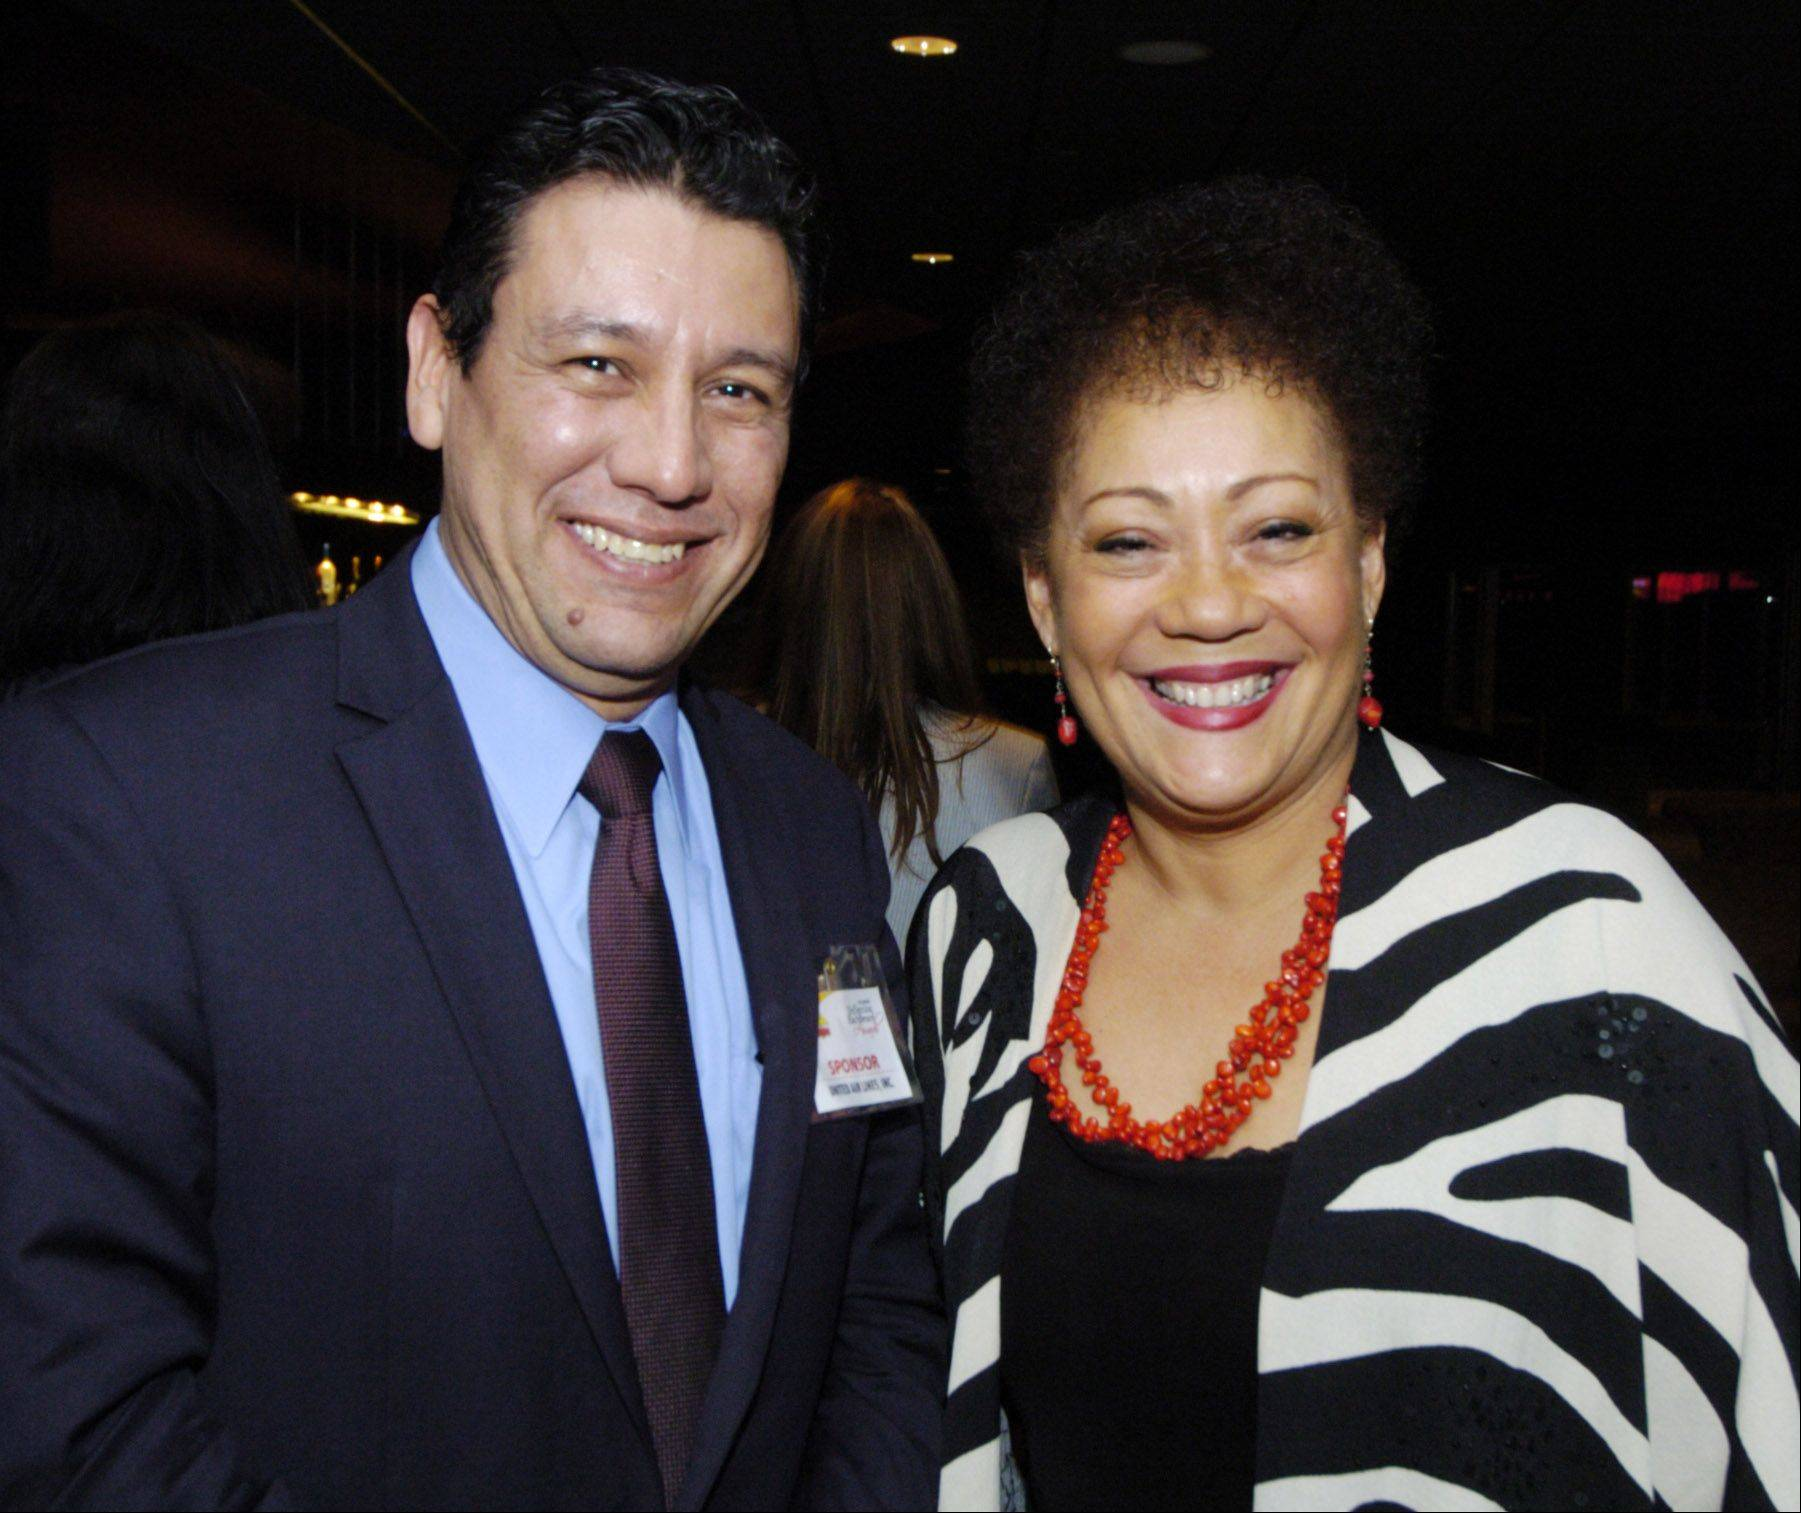 Francisco Figueroa, account manager for Latin America and Caribbean sales for United Airlines, stands beside guest speaker Dr. Lourdes Ferrer during the Reflejos Reflecting Excellence Awards Wednesday at the Sears Centre in Hoffman Estates.